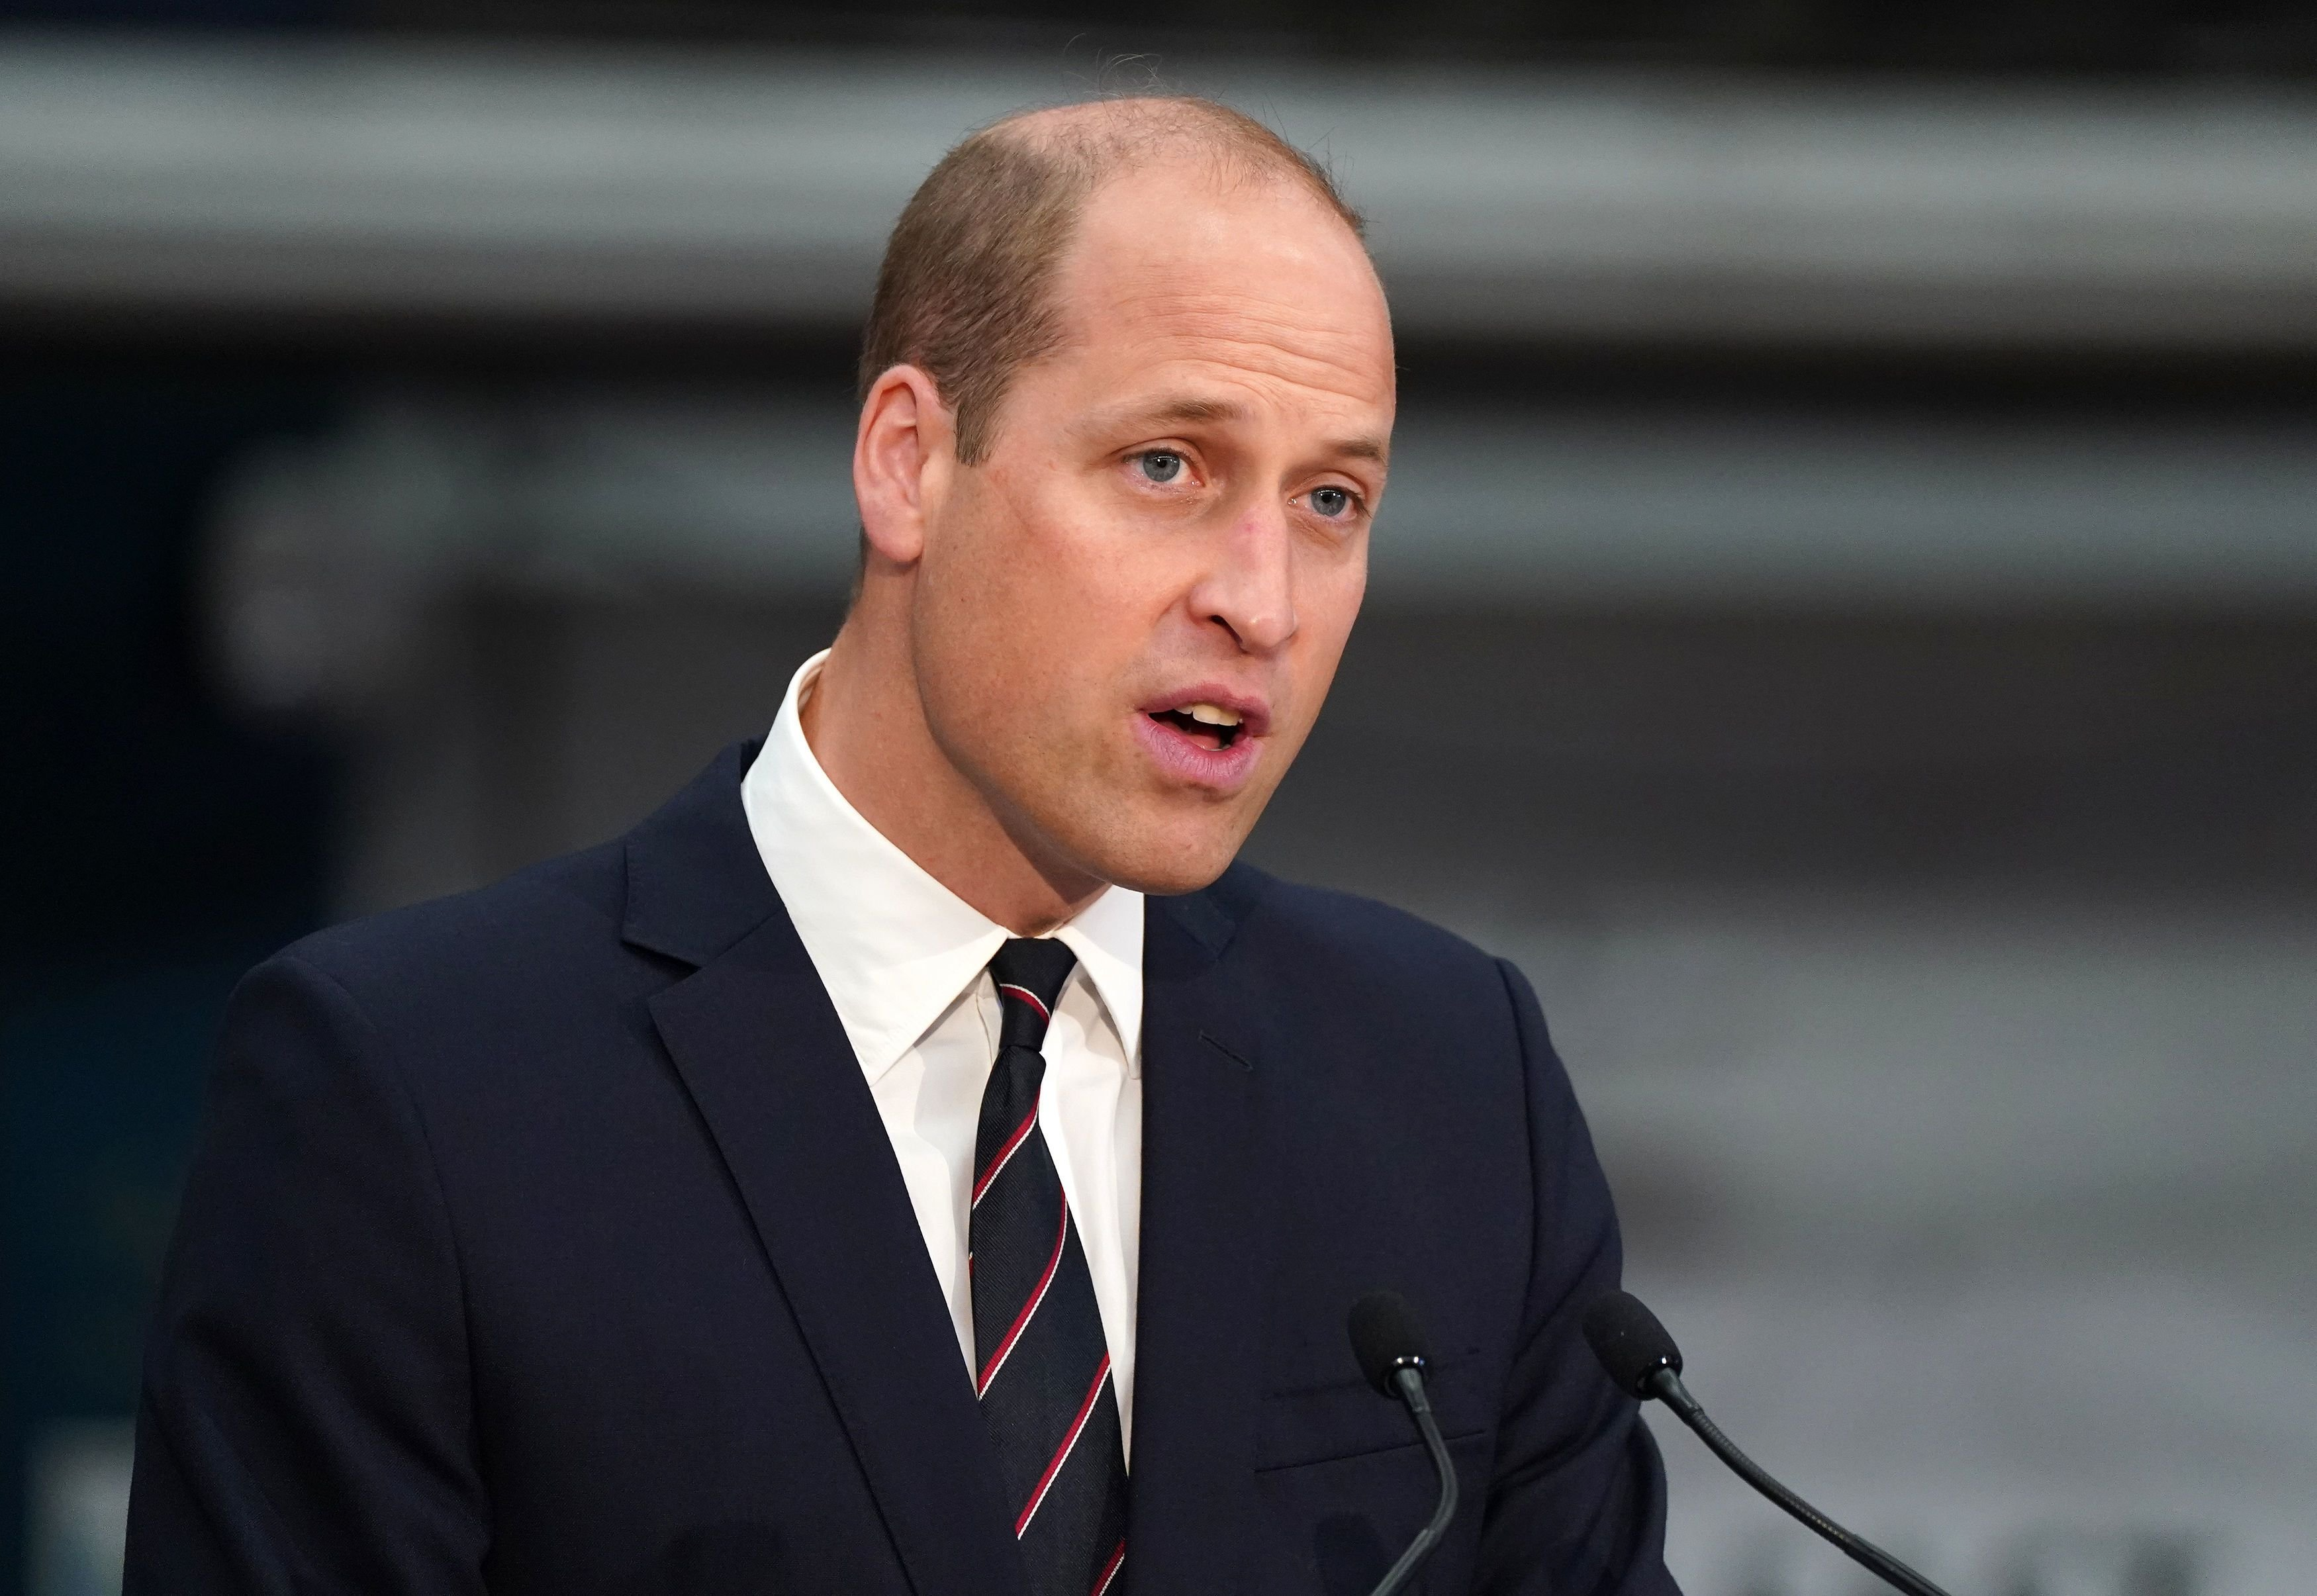 Prince William, the Earl of Strathearn visitsthe BAE Systems shipyard to observe the construction of HMS Glasgow on June 29, 2021, in Glasgow, Scotland   Photo:Andrew Milligan - WPA Pool/Getty Images